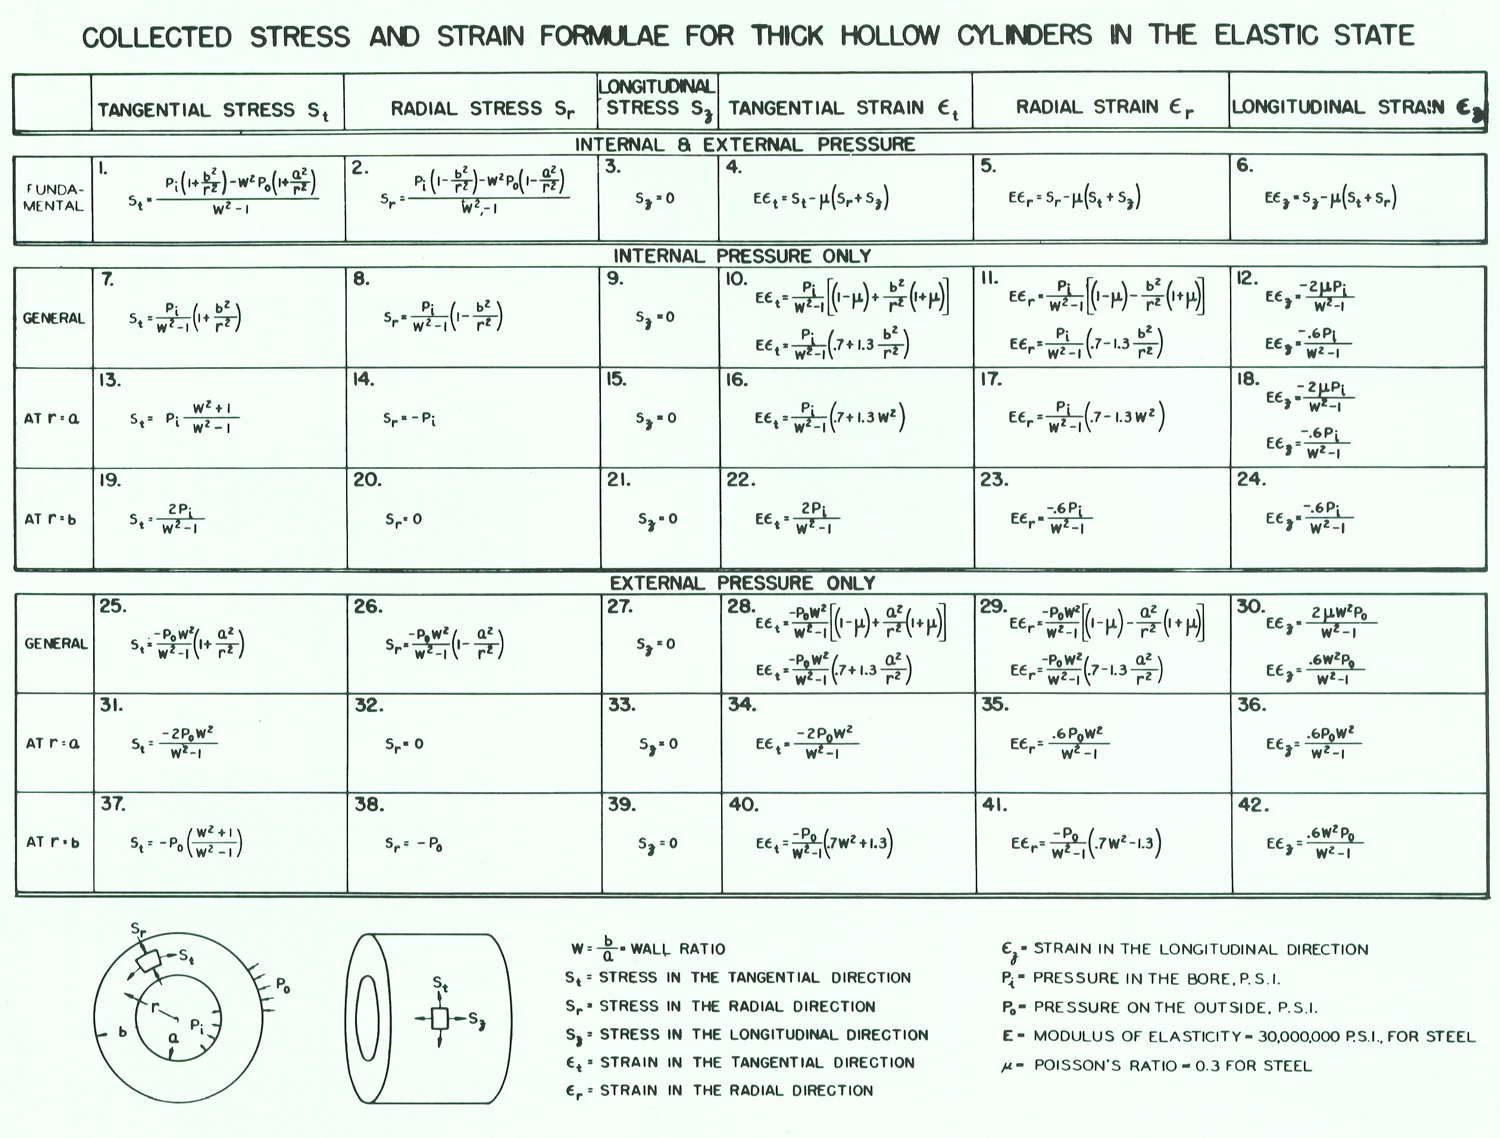 Formulas for Stress and Strain